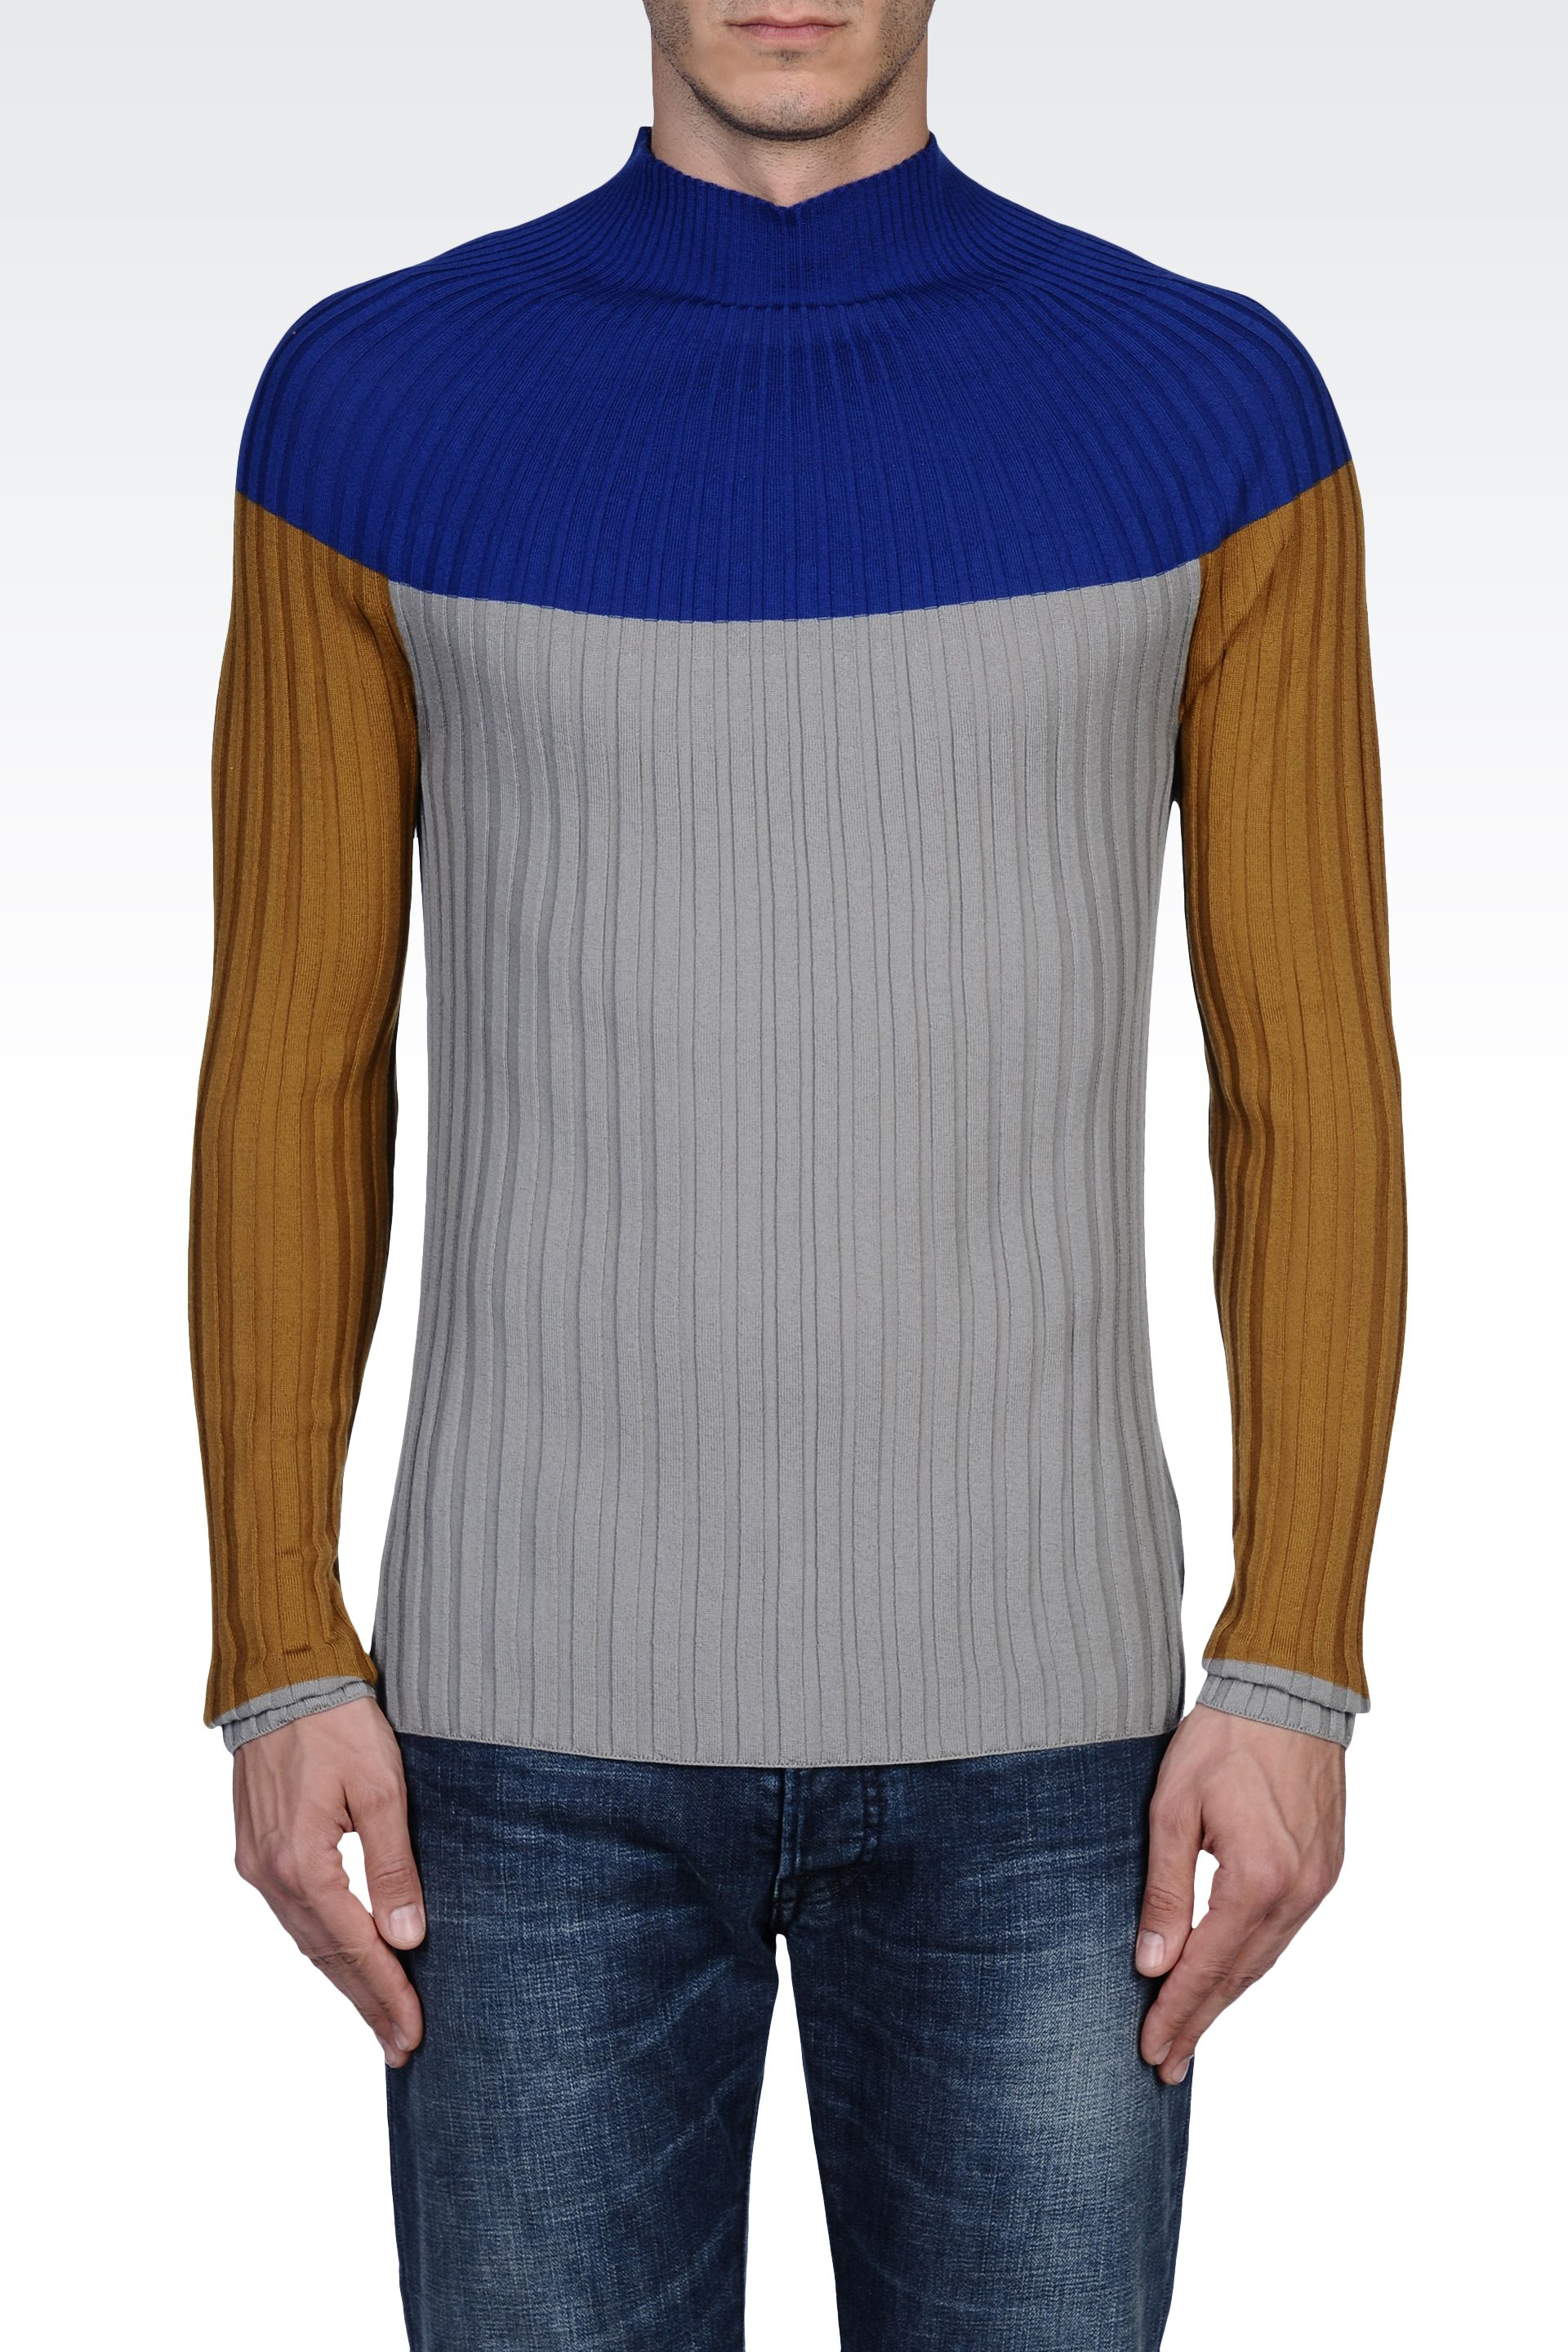 KNITWEAR - Jumpers Emporio Armani Sale With Mastercard Clearance Shop Cheap Sale Best Place Low Cost Cheap Price Comfortable For Sale tdMy4